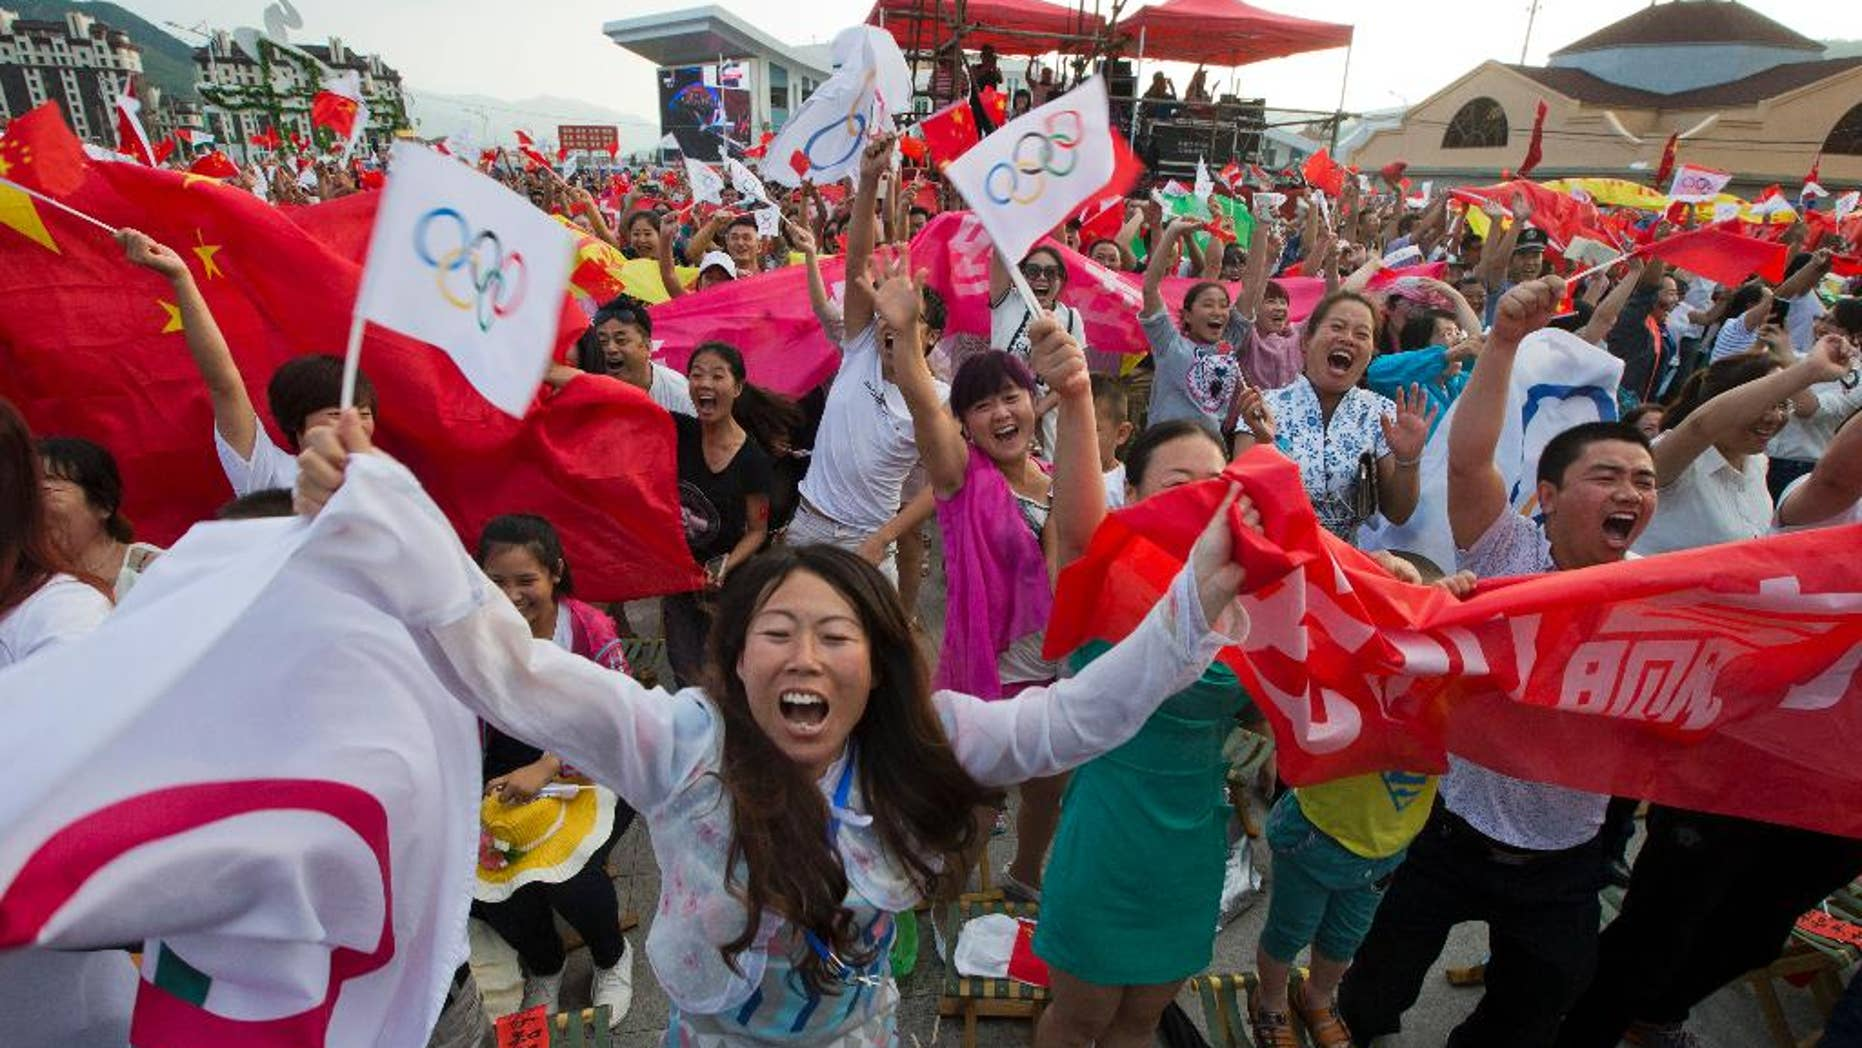 Residents celebrate as Beijing is announced as the host city for the 2022 Winter Olympics at the ski resort region of Chongli where the Nordic skiing, ski jumping, and other outdoor Olympic events will be held in northern China's Hebei province Friday, July 31, 2015. Beijing was selected Friday to host the 2022 Winter Olympics, becoming the first city awarded both the winter and summer games. (AP Photo/Ng Han Guan)